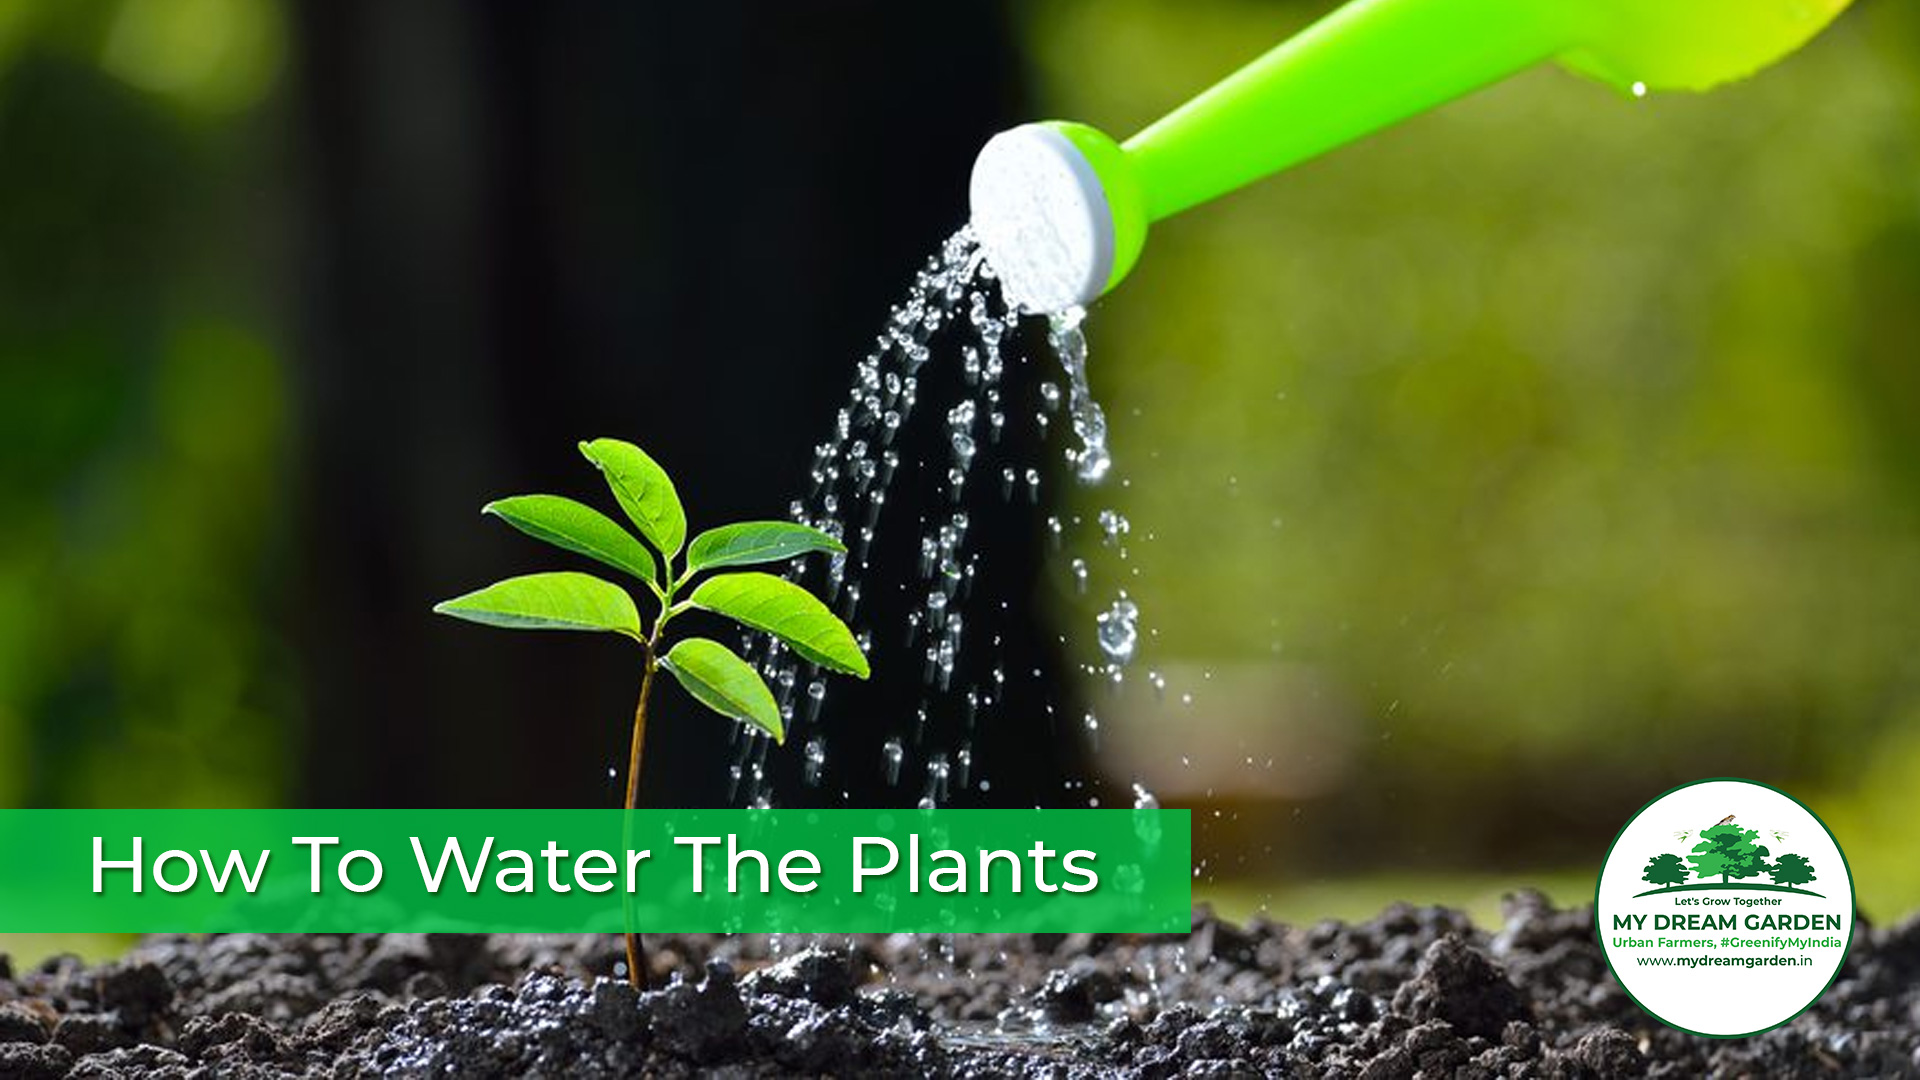 How To Water The Plants